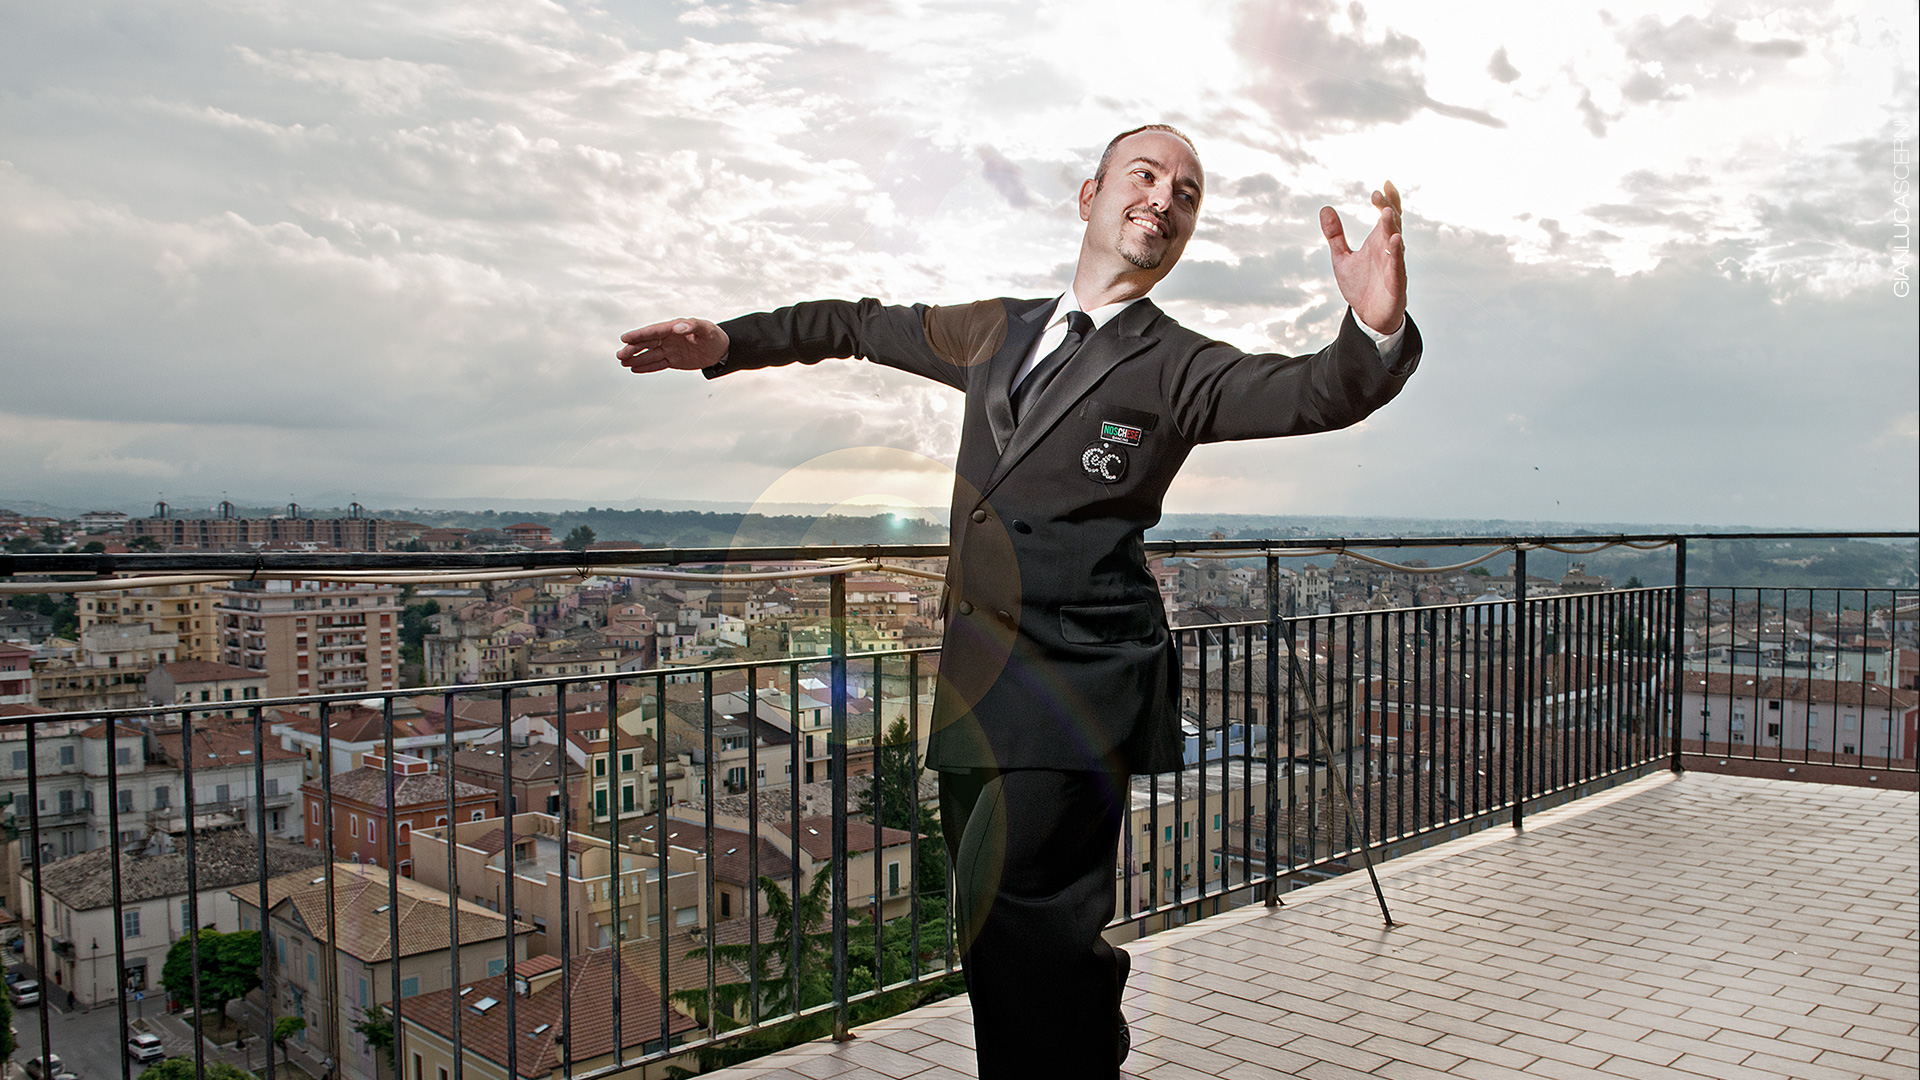 Pietro Del Bello World Ballroom Dance Champion